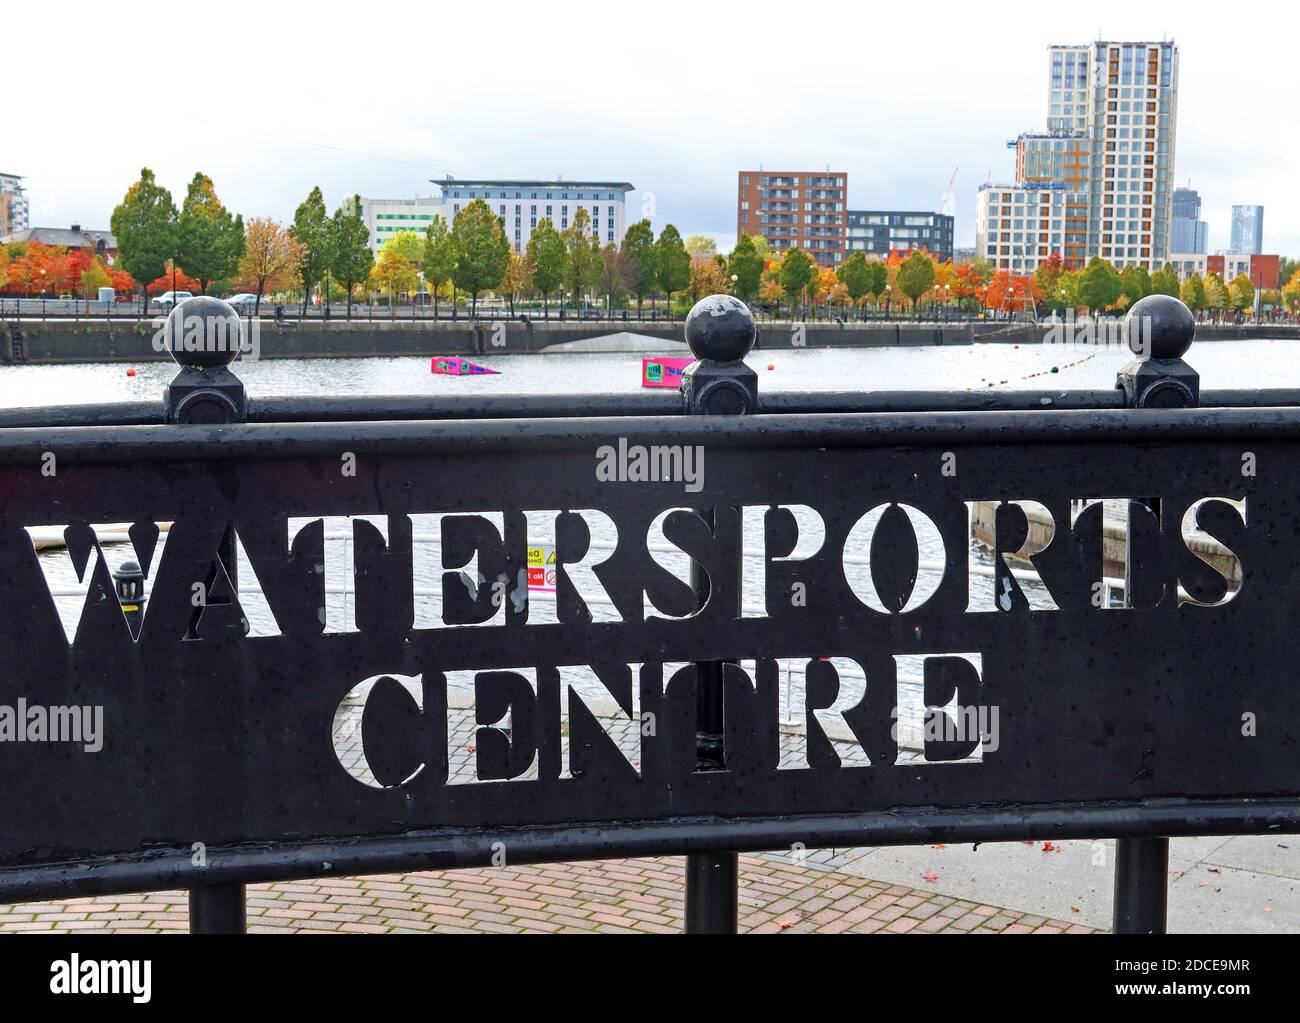 Dieses Stockfoto: Watersports Centre, Salford Quays, 15 The Quays, Salford, Greater Manchester, England, UK, M50 3SQ - 2DCE9M